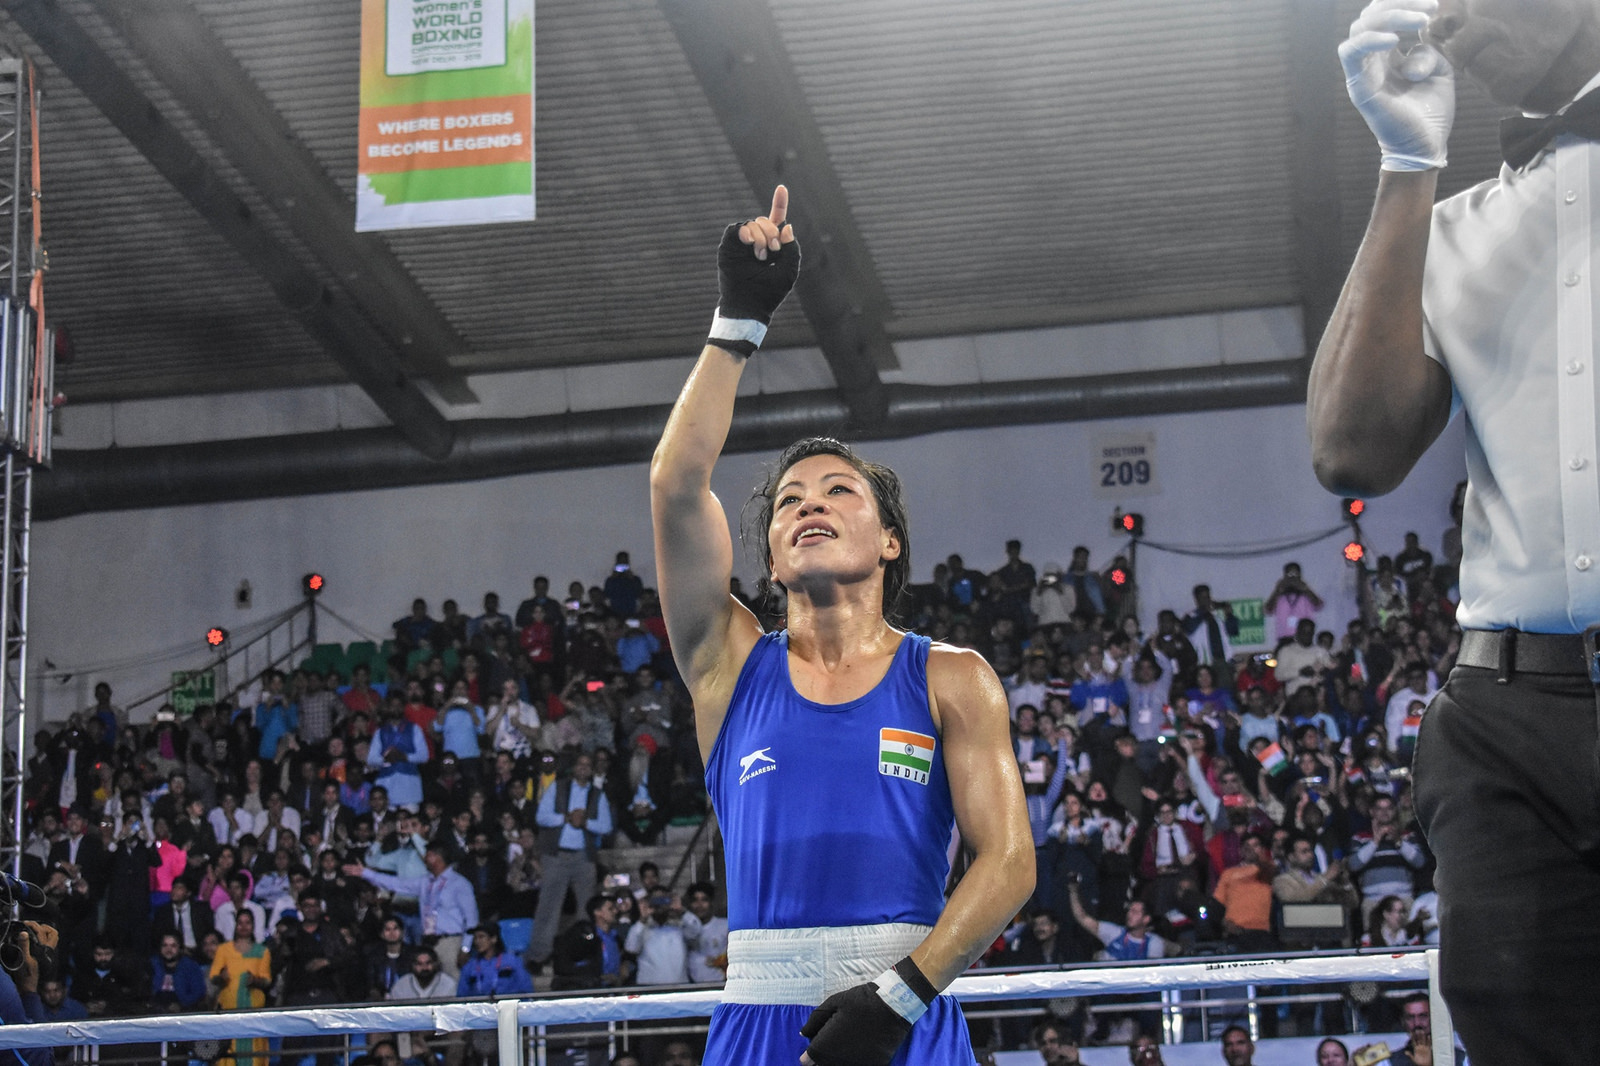 Mary Kom will take on Ukraine's Hannah Okhota in the final of the World Boxing Championships in New Delhi, looking to win an unprecedented sixth gold. (Pic: AIBA)